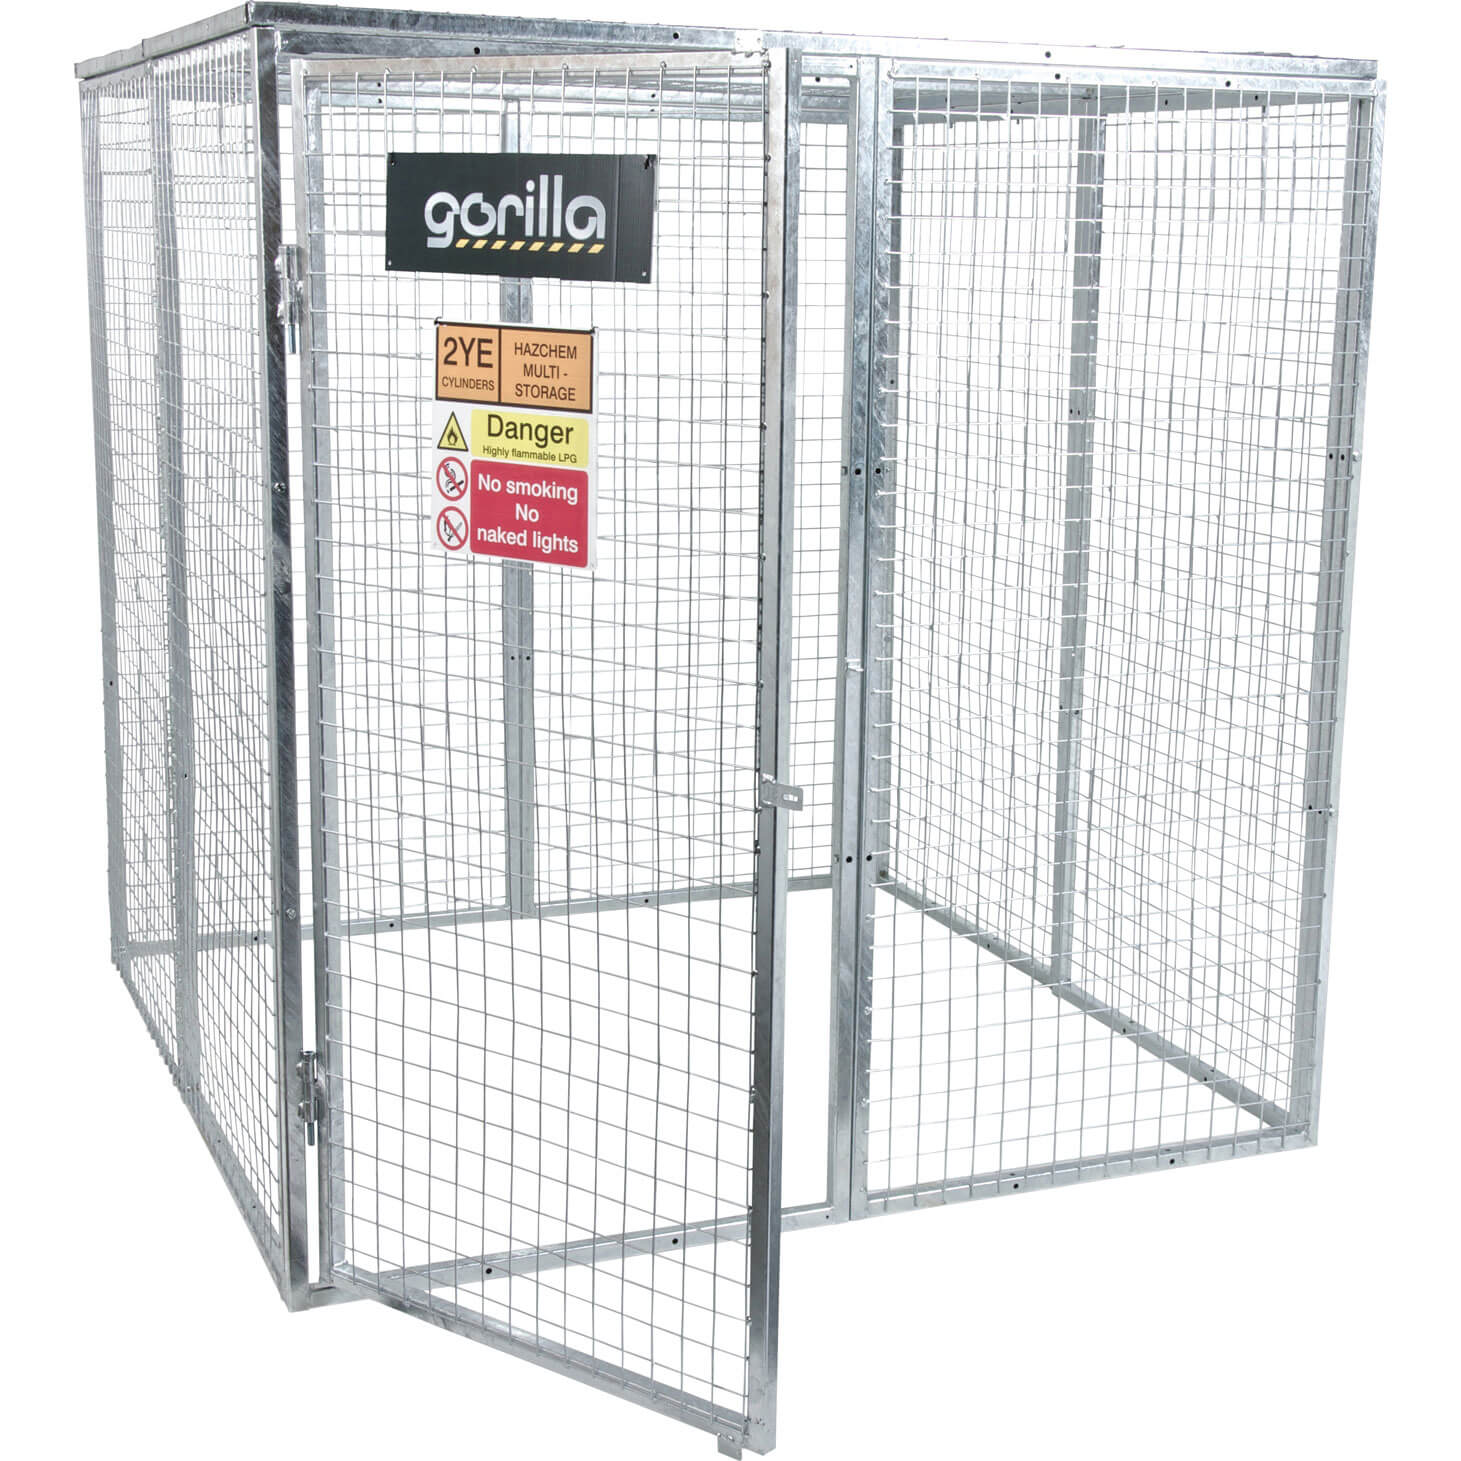 Armorgard Gorilla Bolt Together Gas Cylinder Cage 1800mm x 1800mm x 1800mm